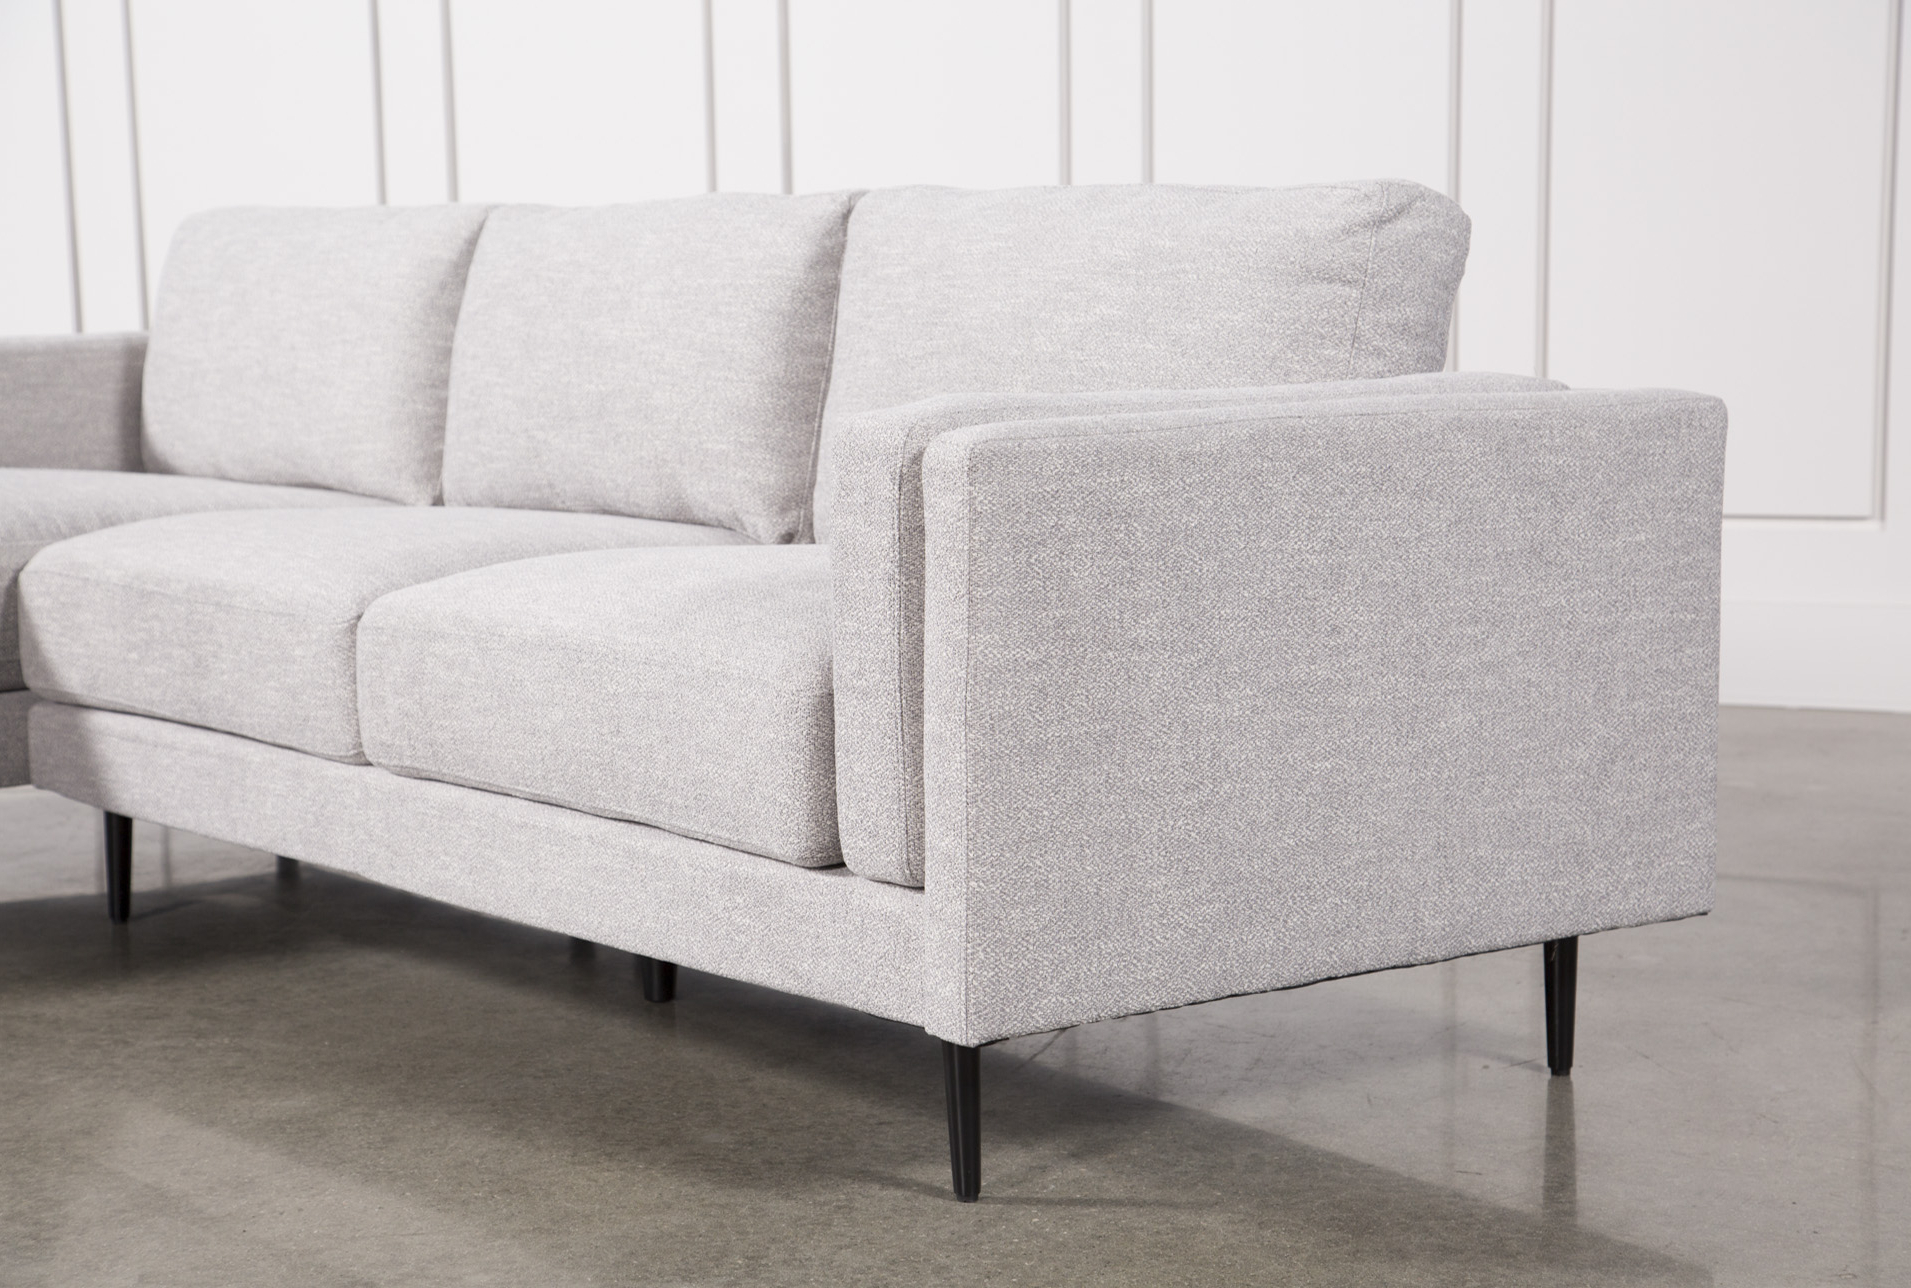 Aquarius Light Grey 2 Piece Sectional W/raf Chaise (Gallery 2 of 20)